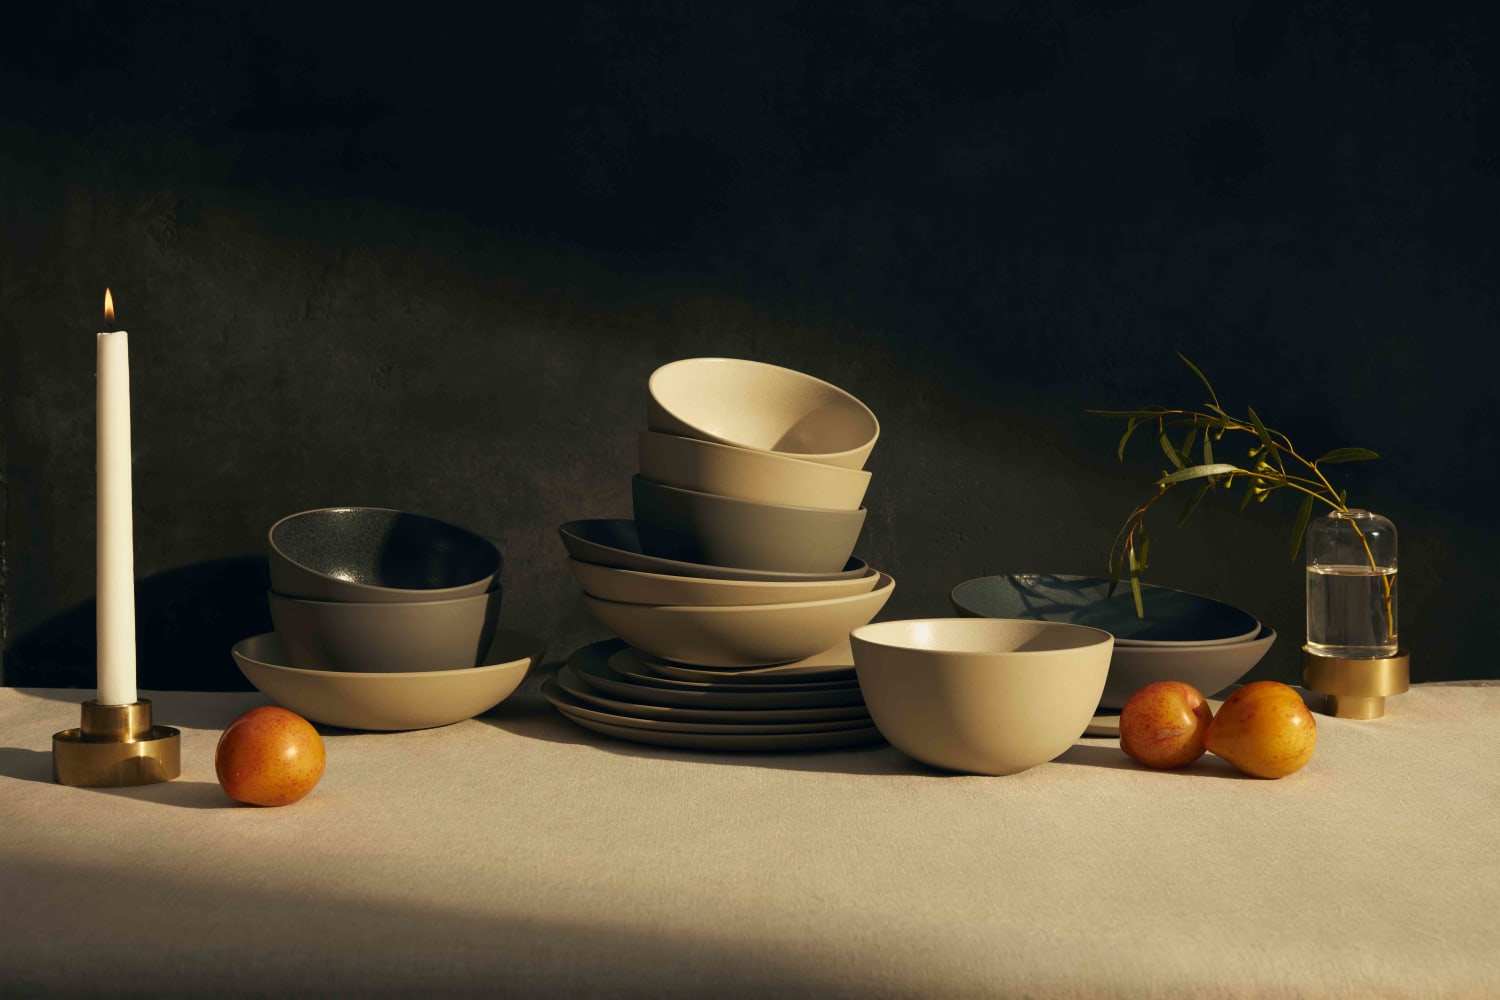 One of Our Favorite Small Kitchen Brands Just Launched an Incredibly Beautiful (and Durable!) Tabletop Collection